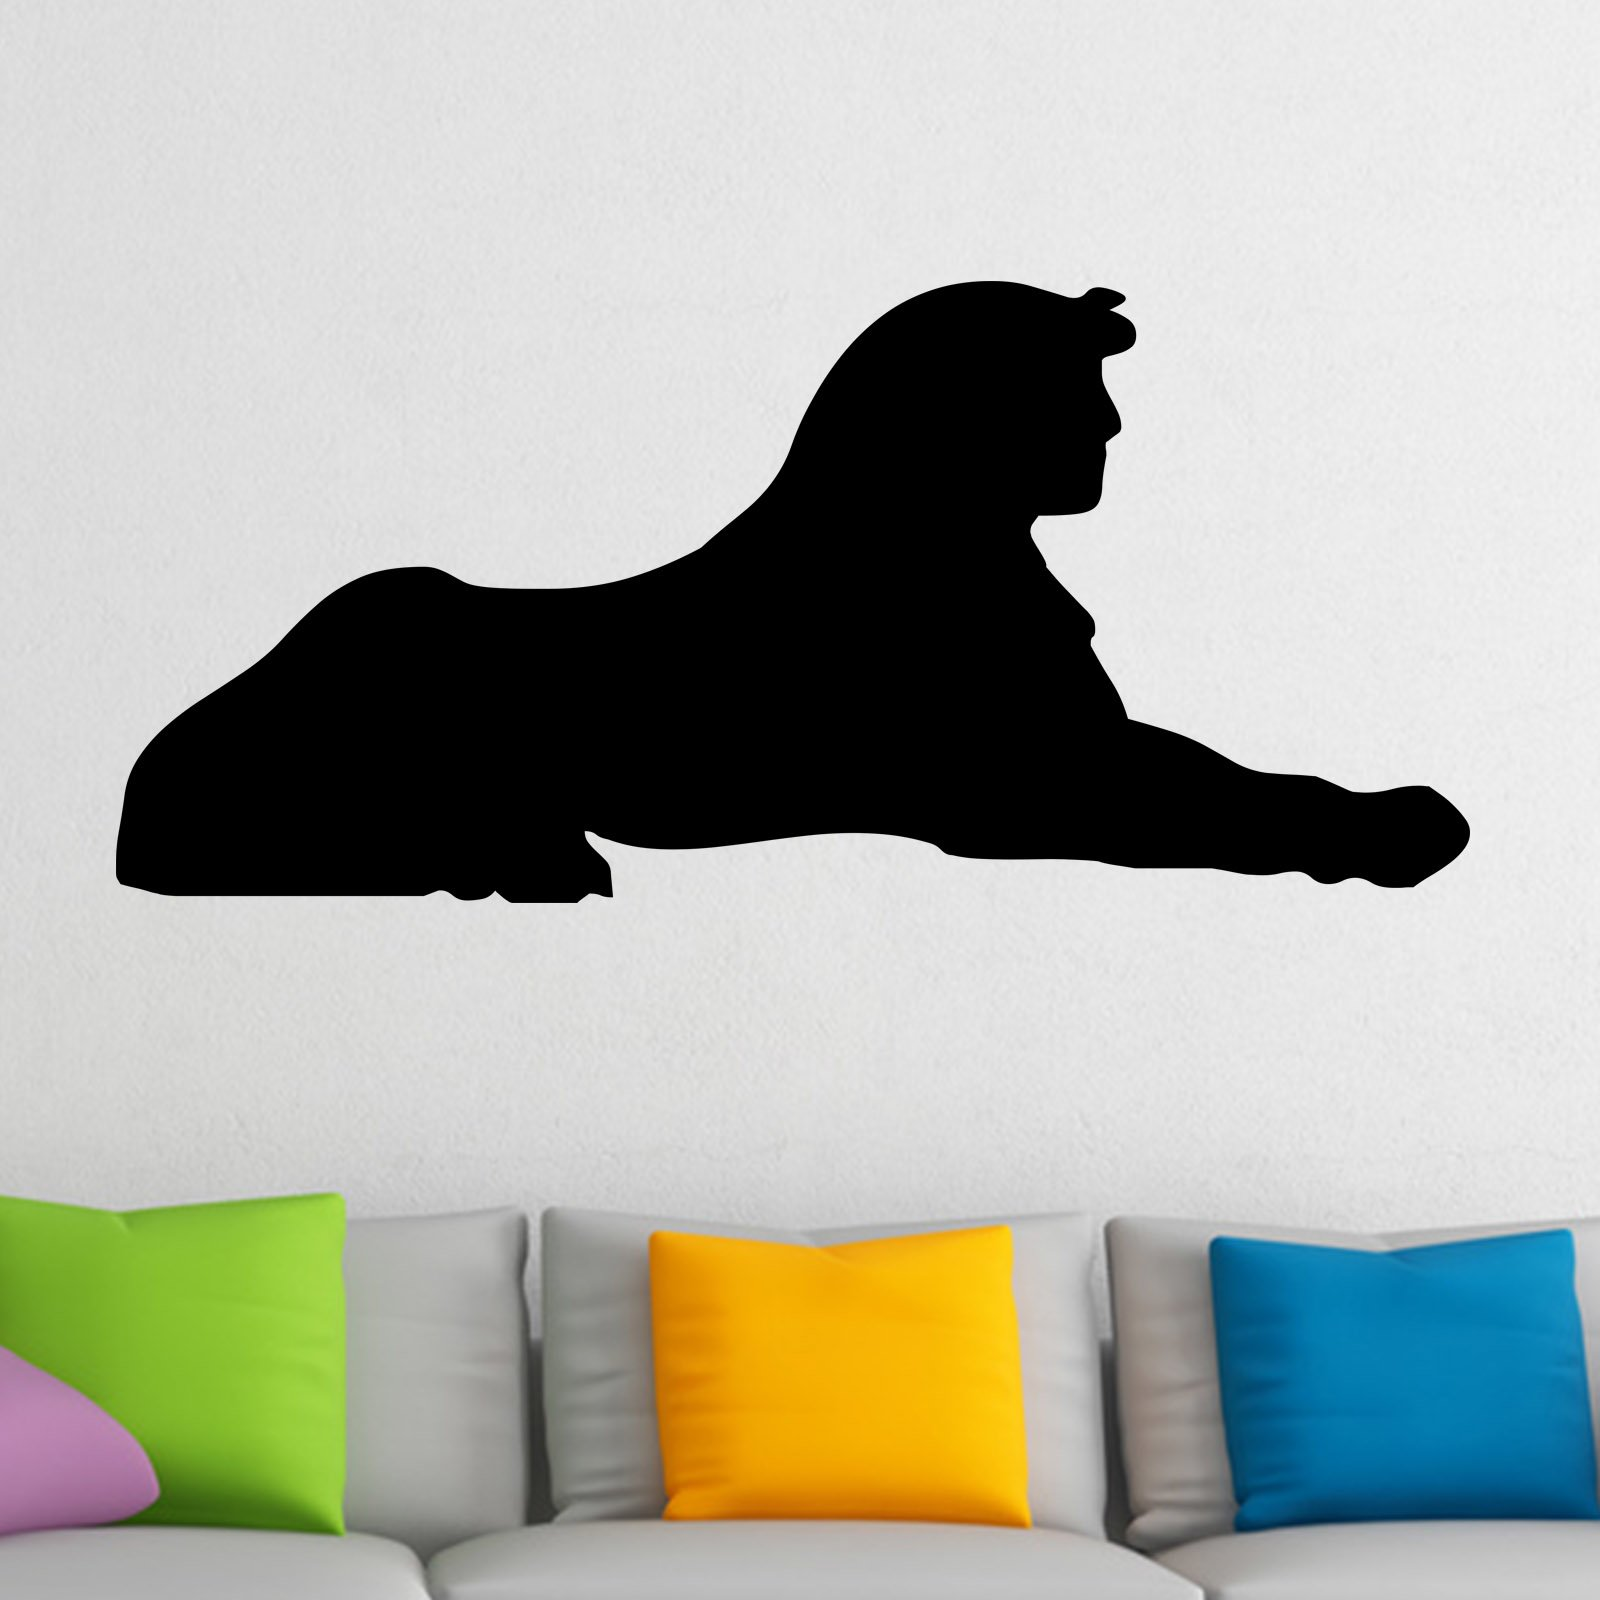 Sphinx egyptian silhouette wall sticker world of wall stickers sphinx egyptian silhouette wall sticker decal a amipublicfo Image collections